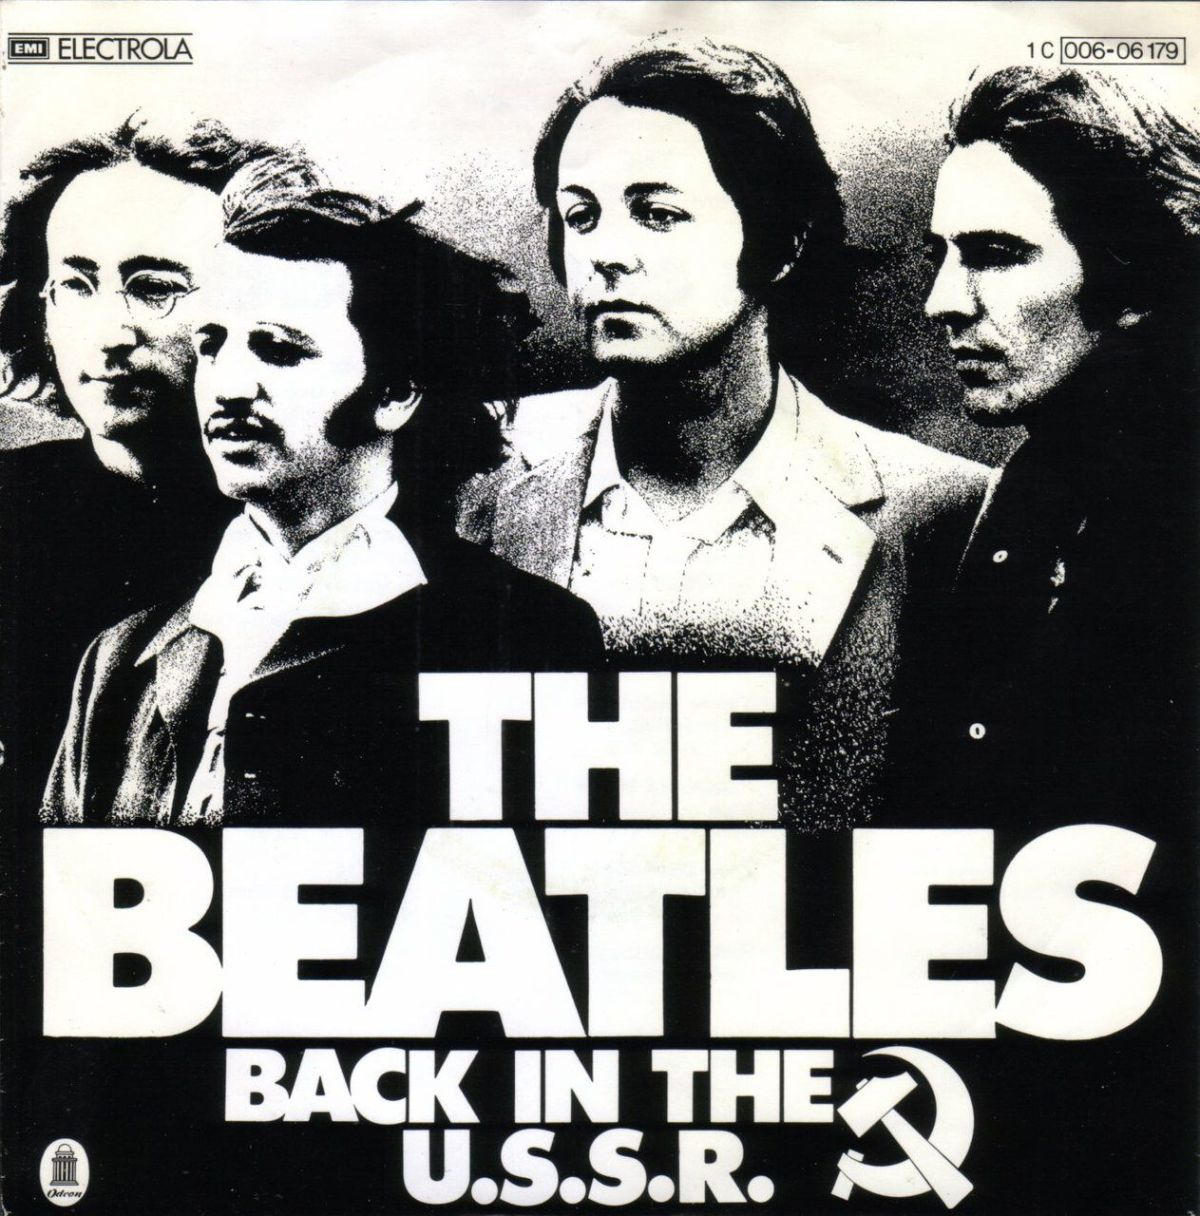 Beatles – Back In The U.S.S.R.